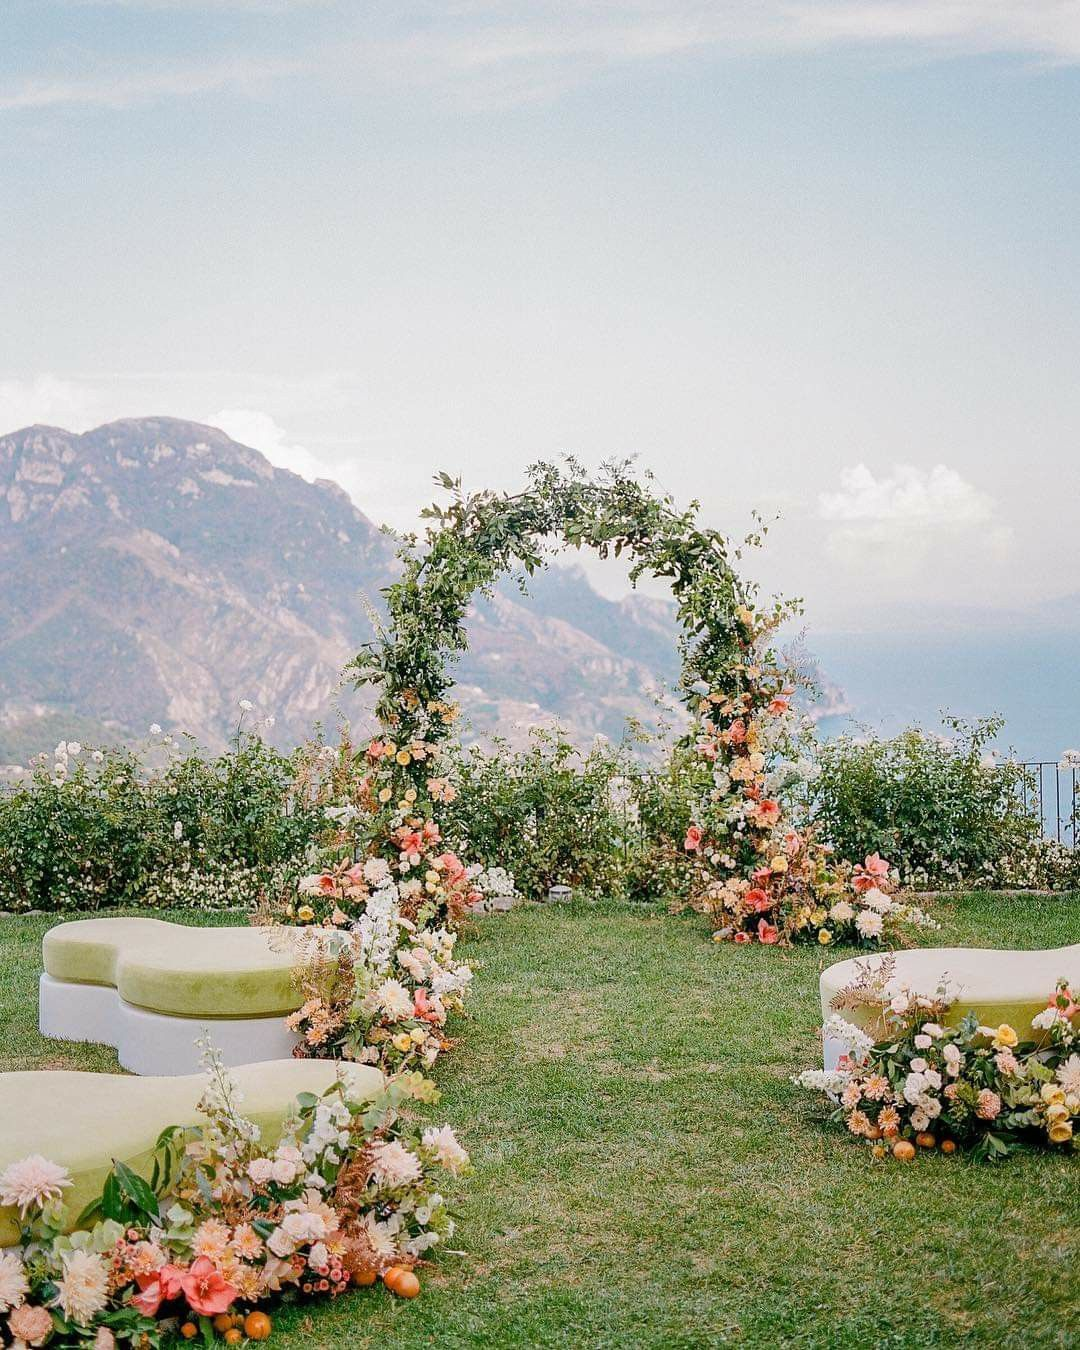 Church Wedding Decorations Ideas For Your Wedding In Italy: Pin By Amy Dennill On 4Entertaining